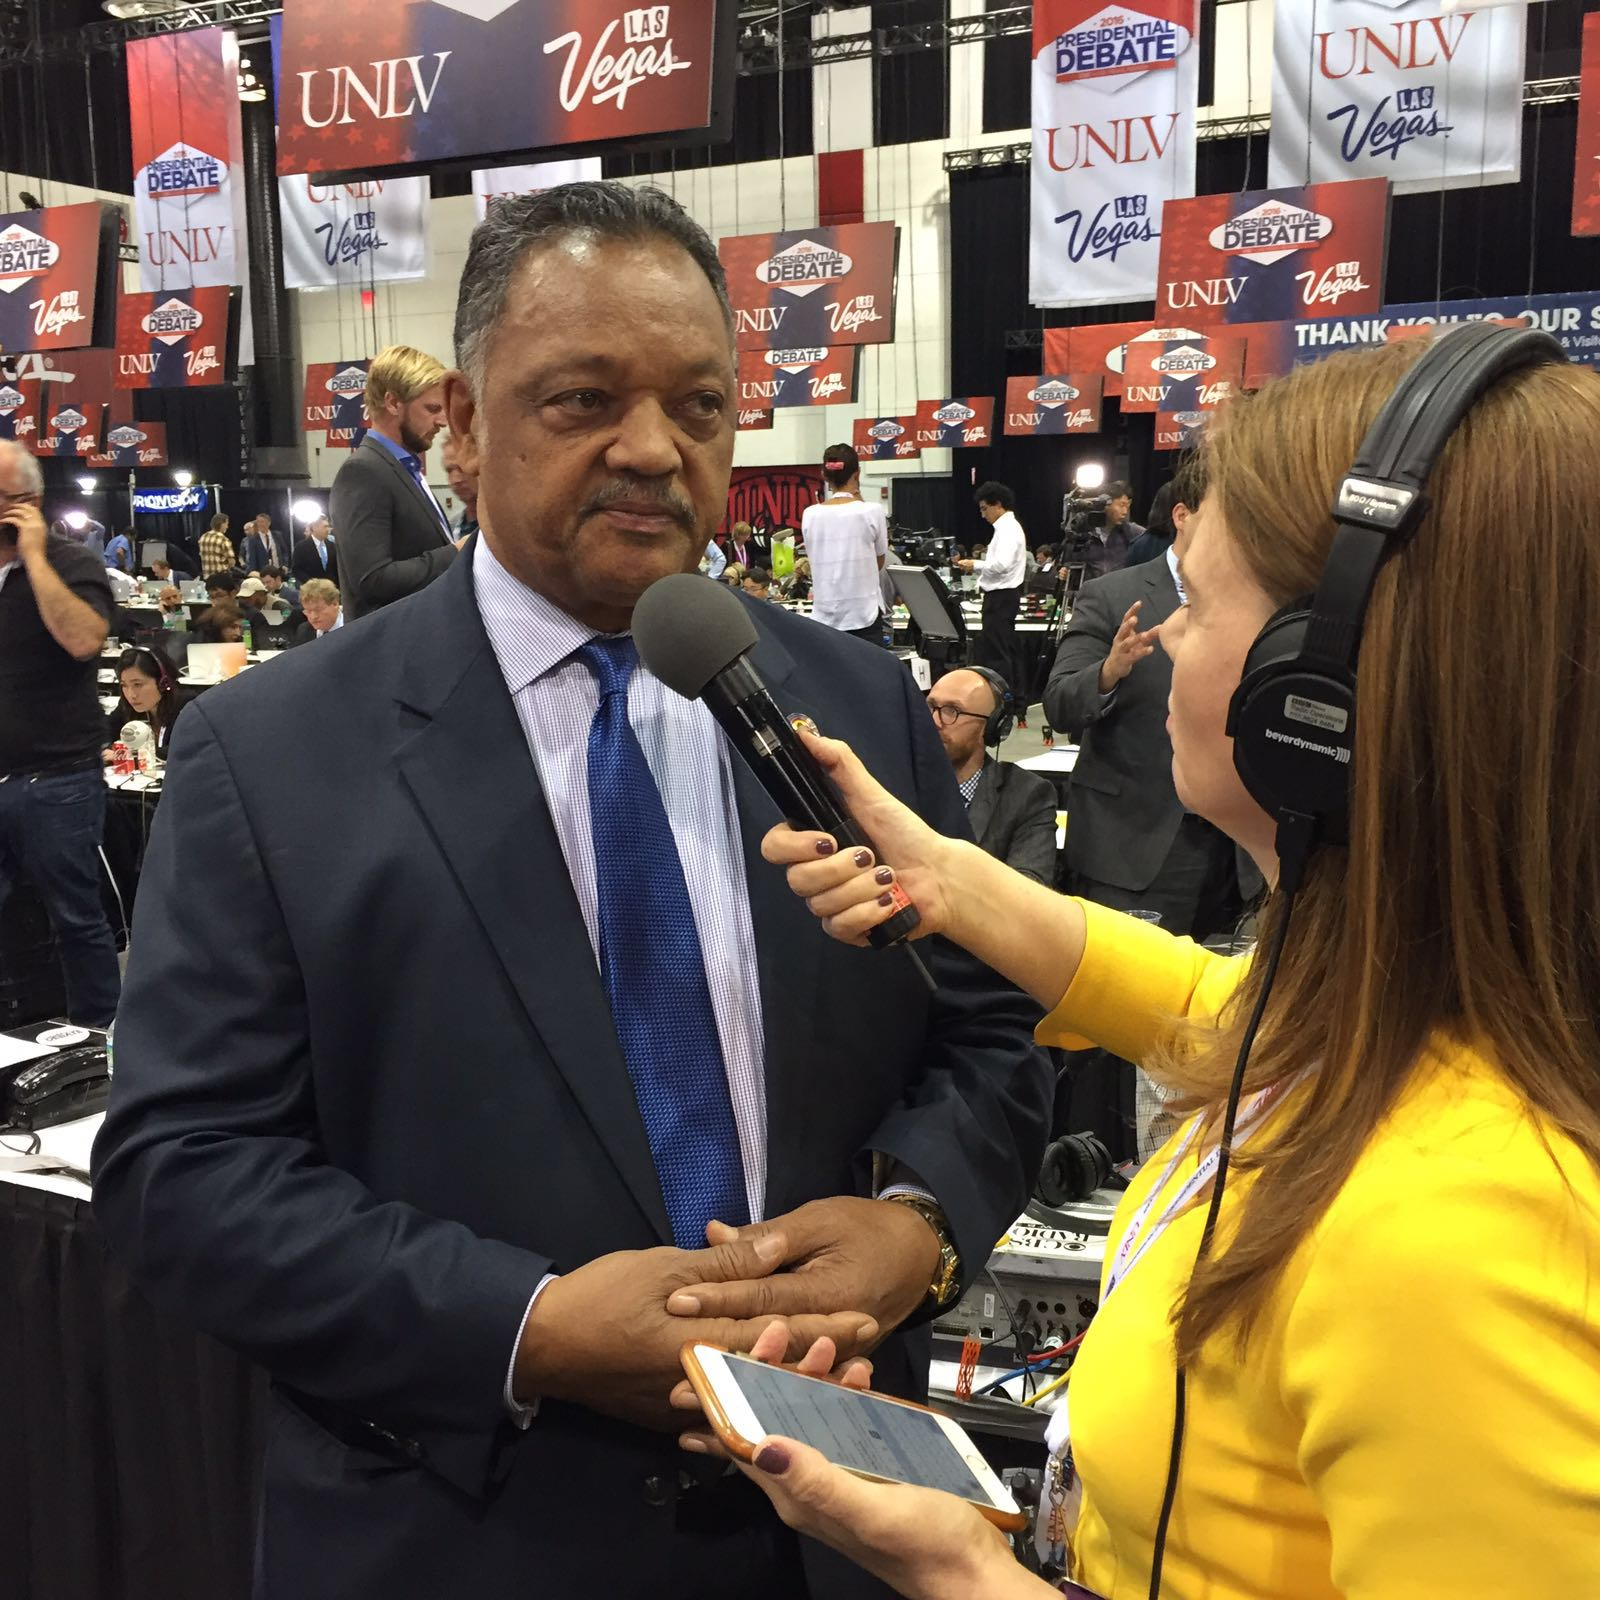 At the third and final US 2016 presidential debate between Clinton and Trump, interviewing civil rights activist Rev. Jesse Jackson in the spin room.